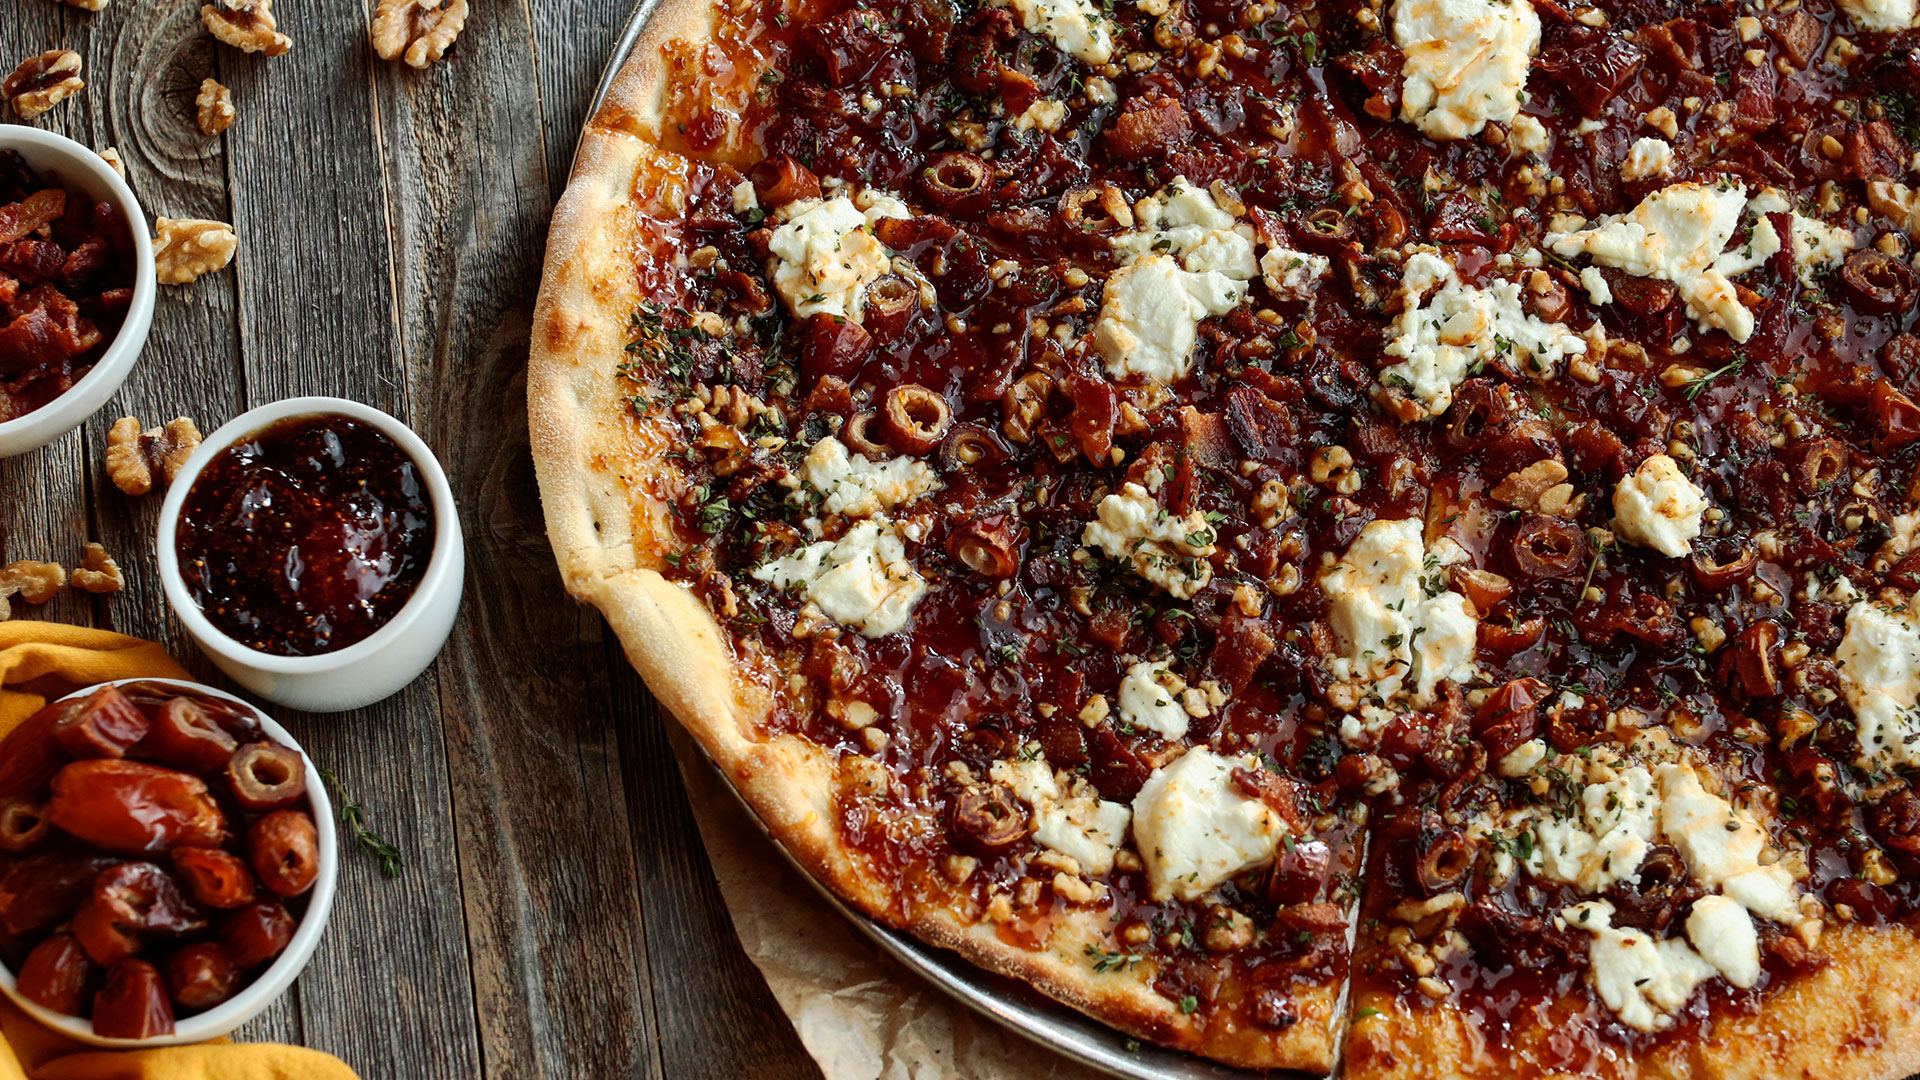 Menu Pies Pints Great Pizza And Awesome Craft Beer Get Some Number 1 legitimately freaked me out while reading it. menu pies pints great pizza and